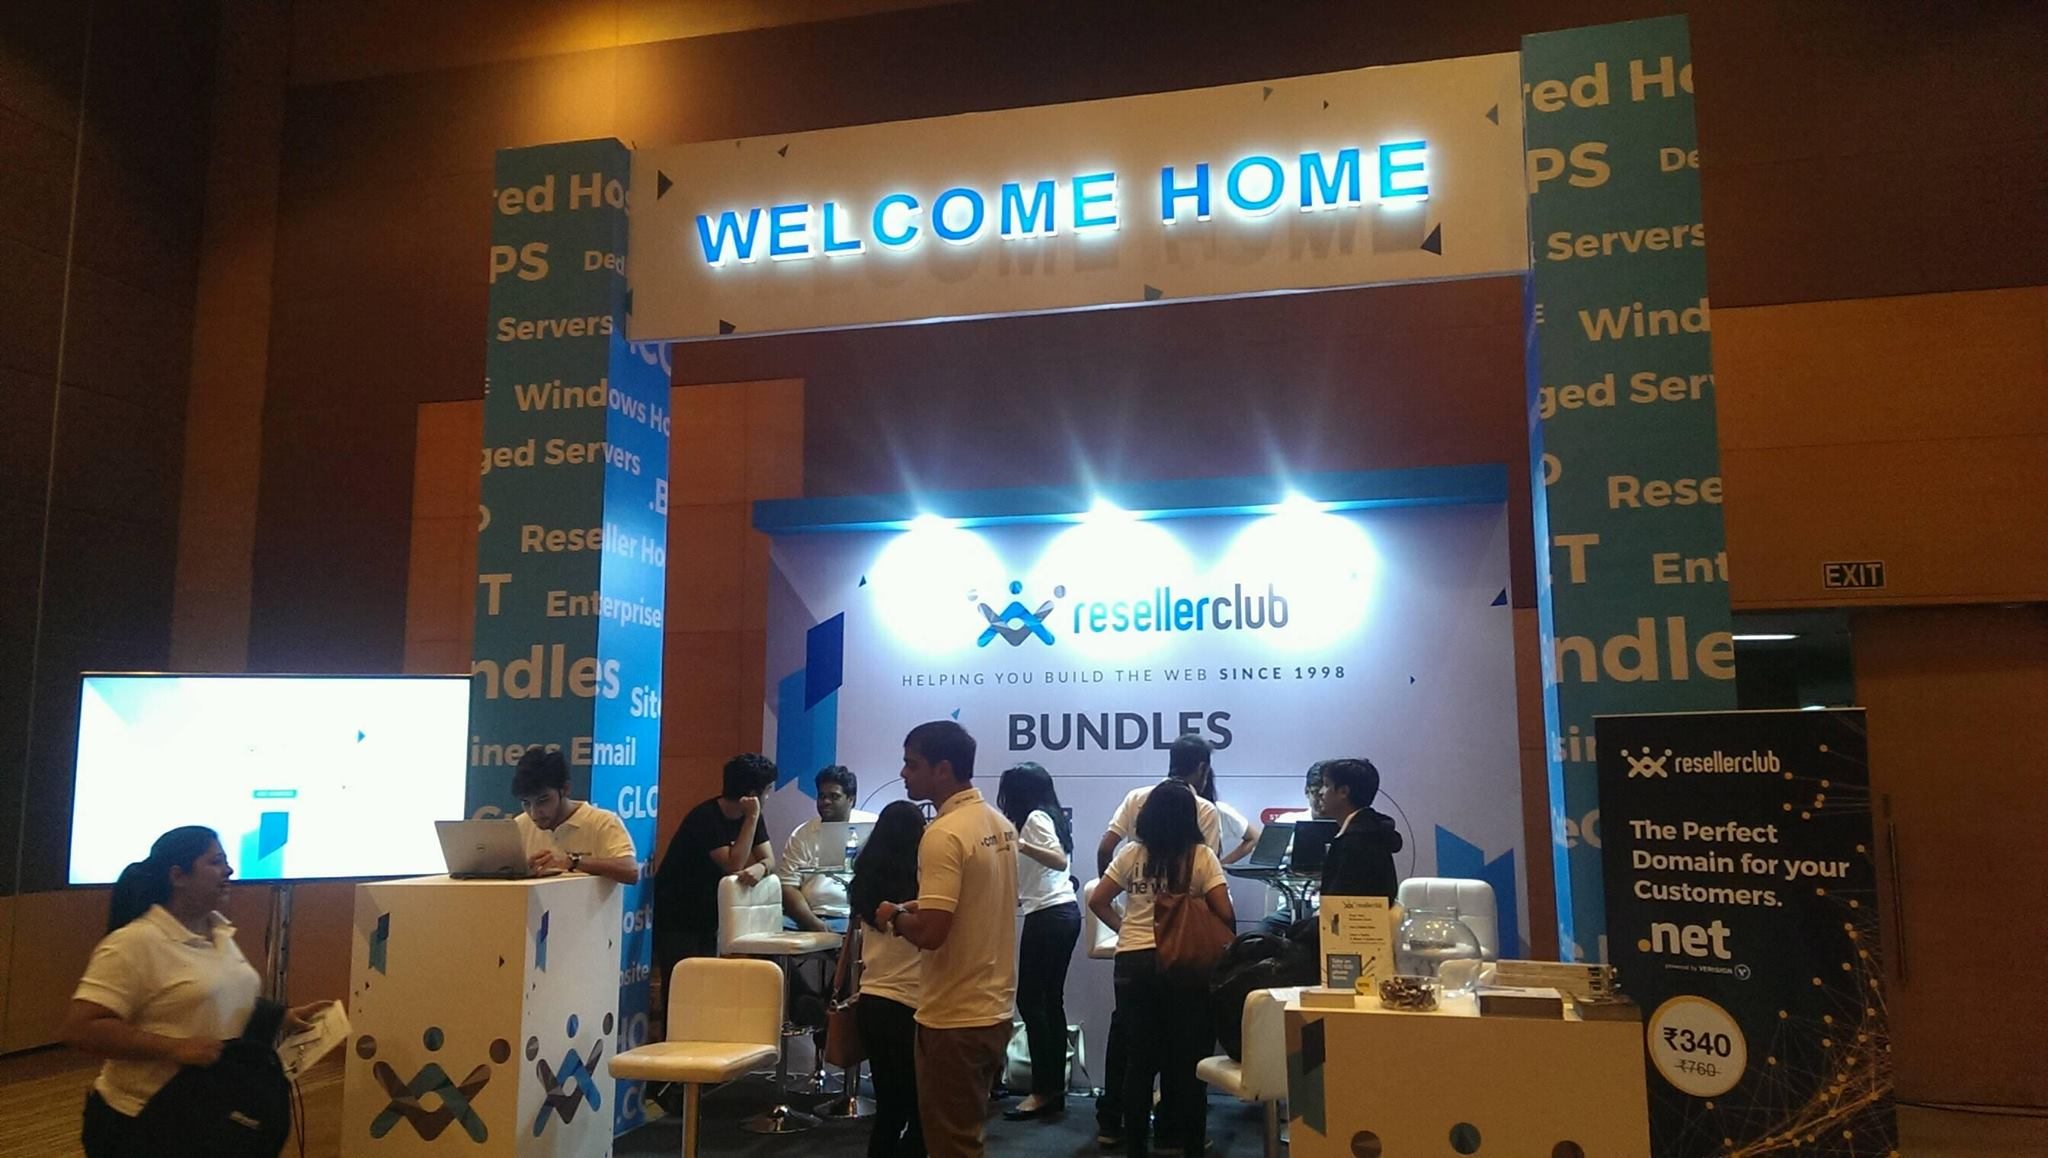 welcome home whd2015 booth